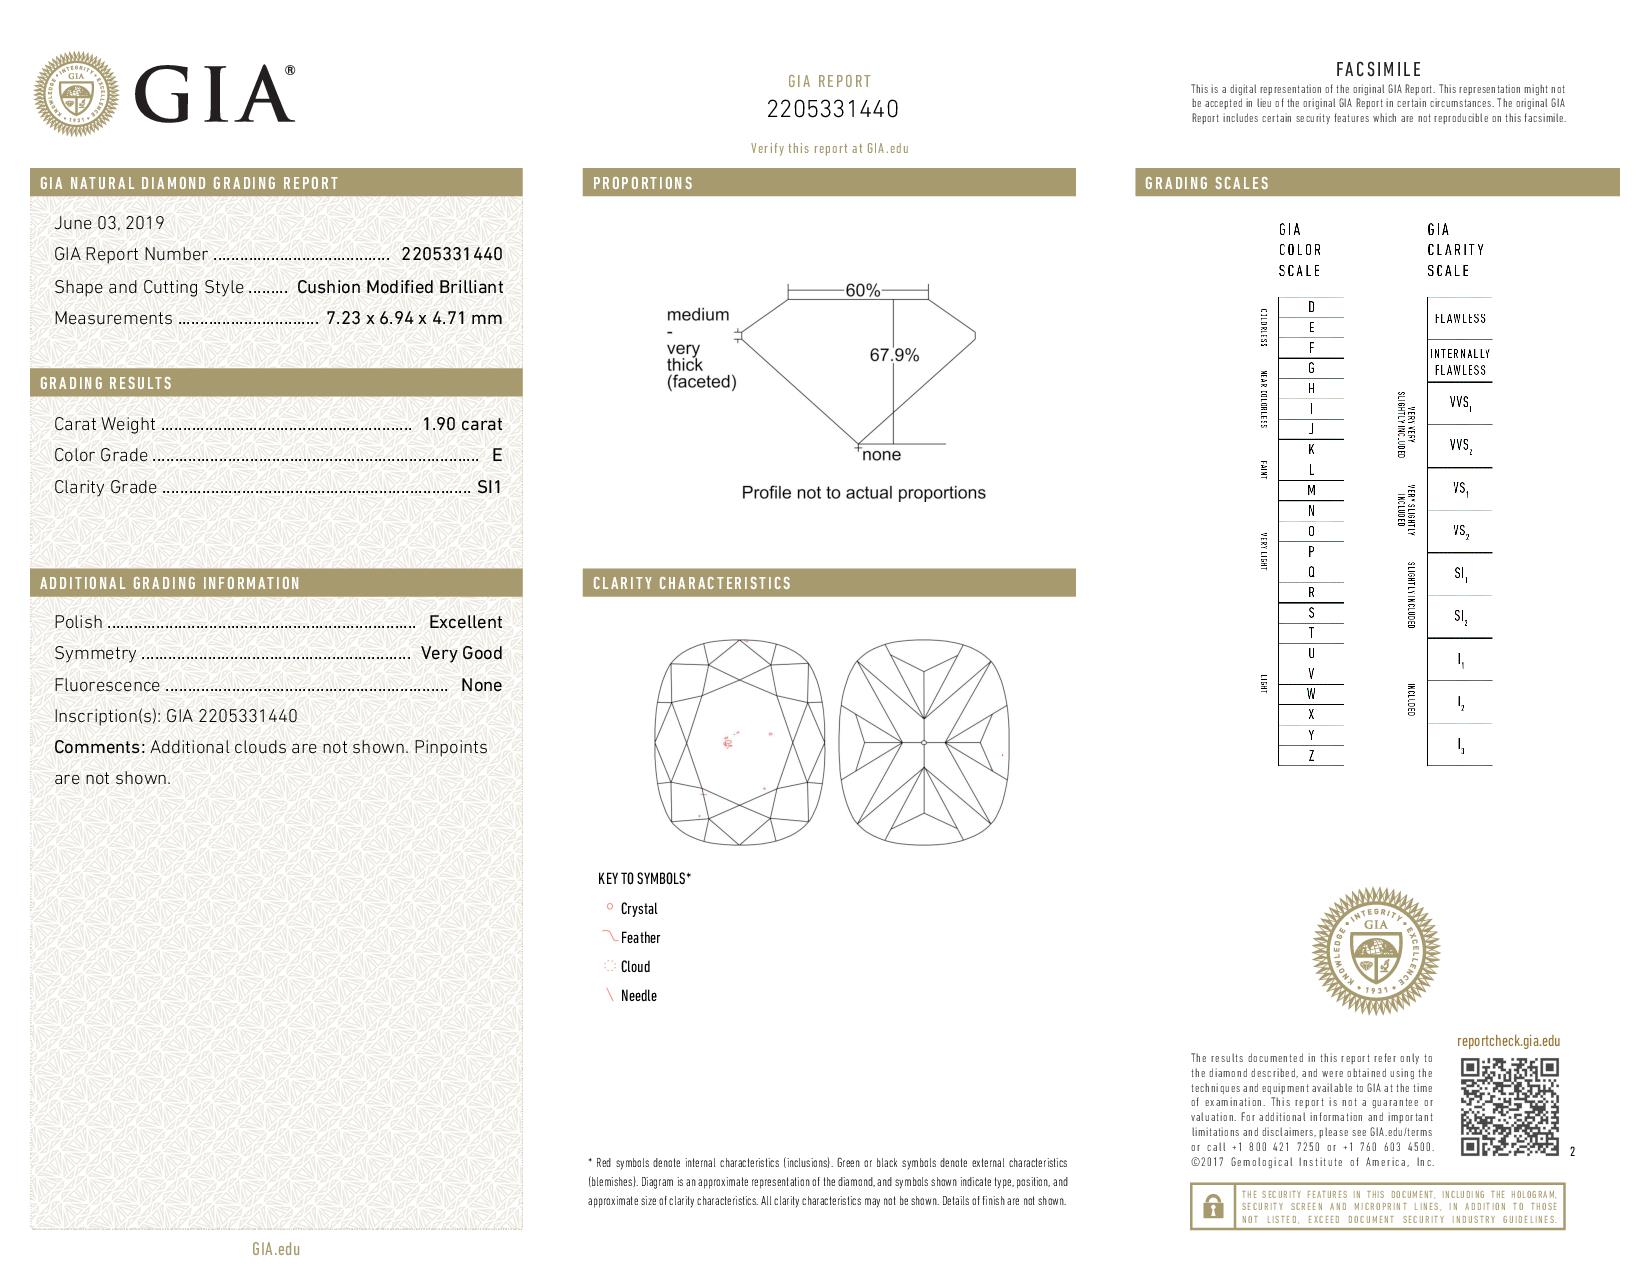 This is a 1.90 carat cushion shape, E color, SI1 clarity natural diamond accompanied by a GIA grading report.